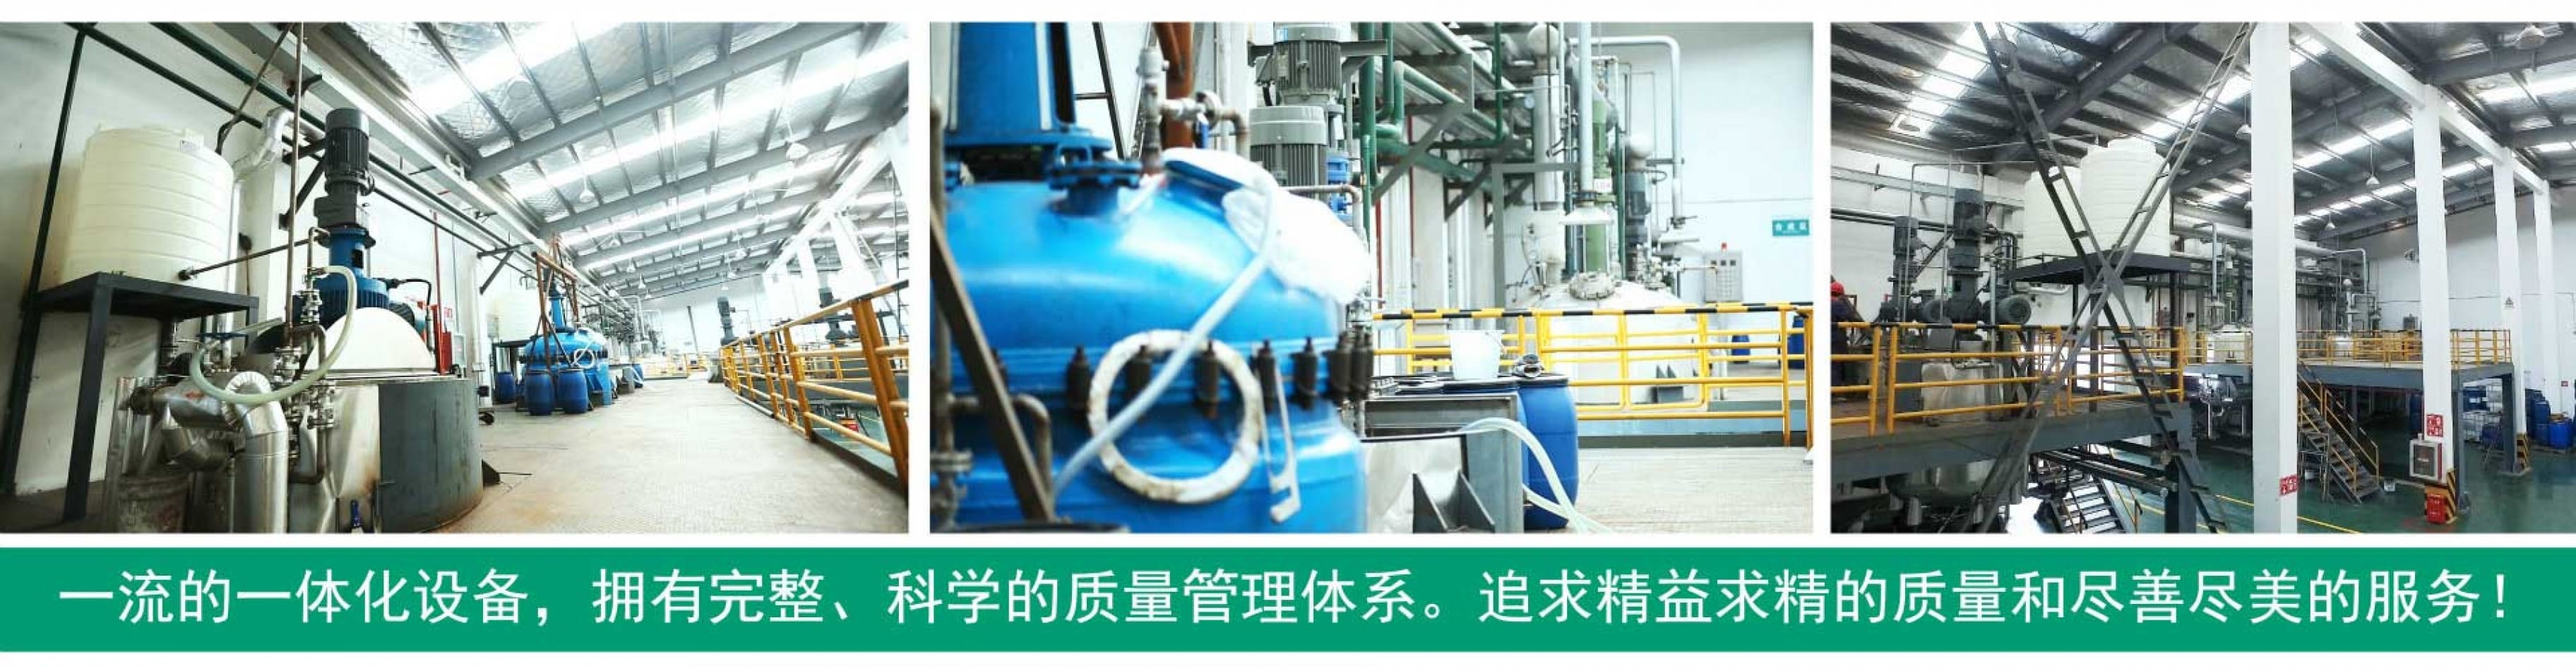 SHANGHAI RUCO BIO-TECH CO., LTD.